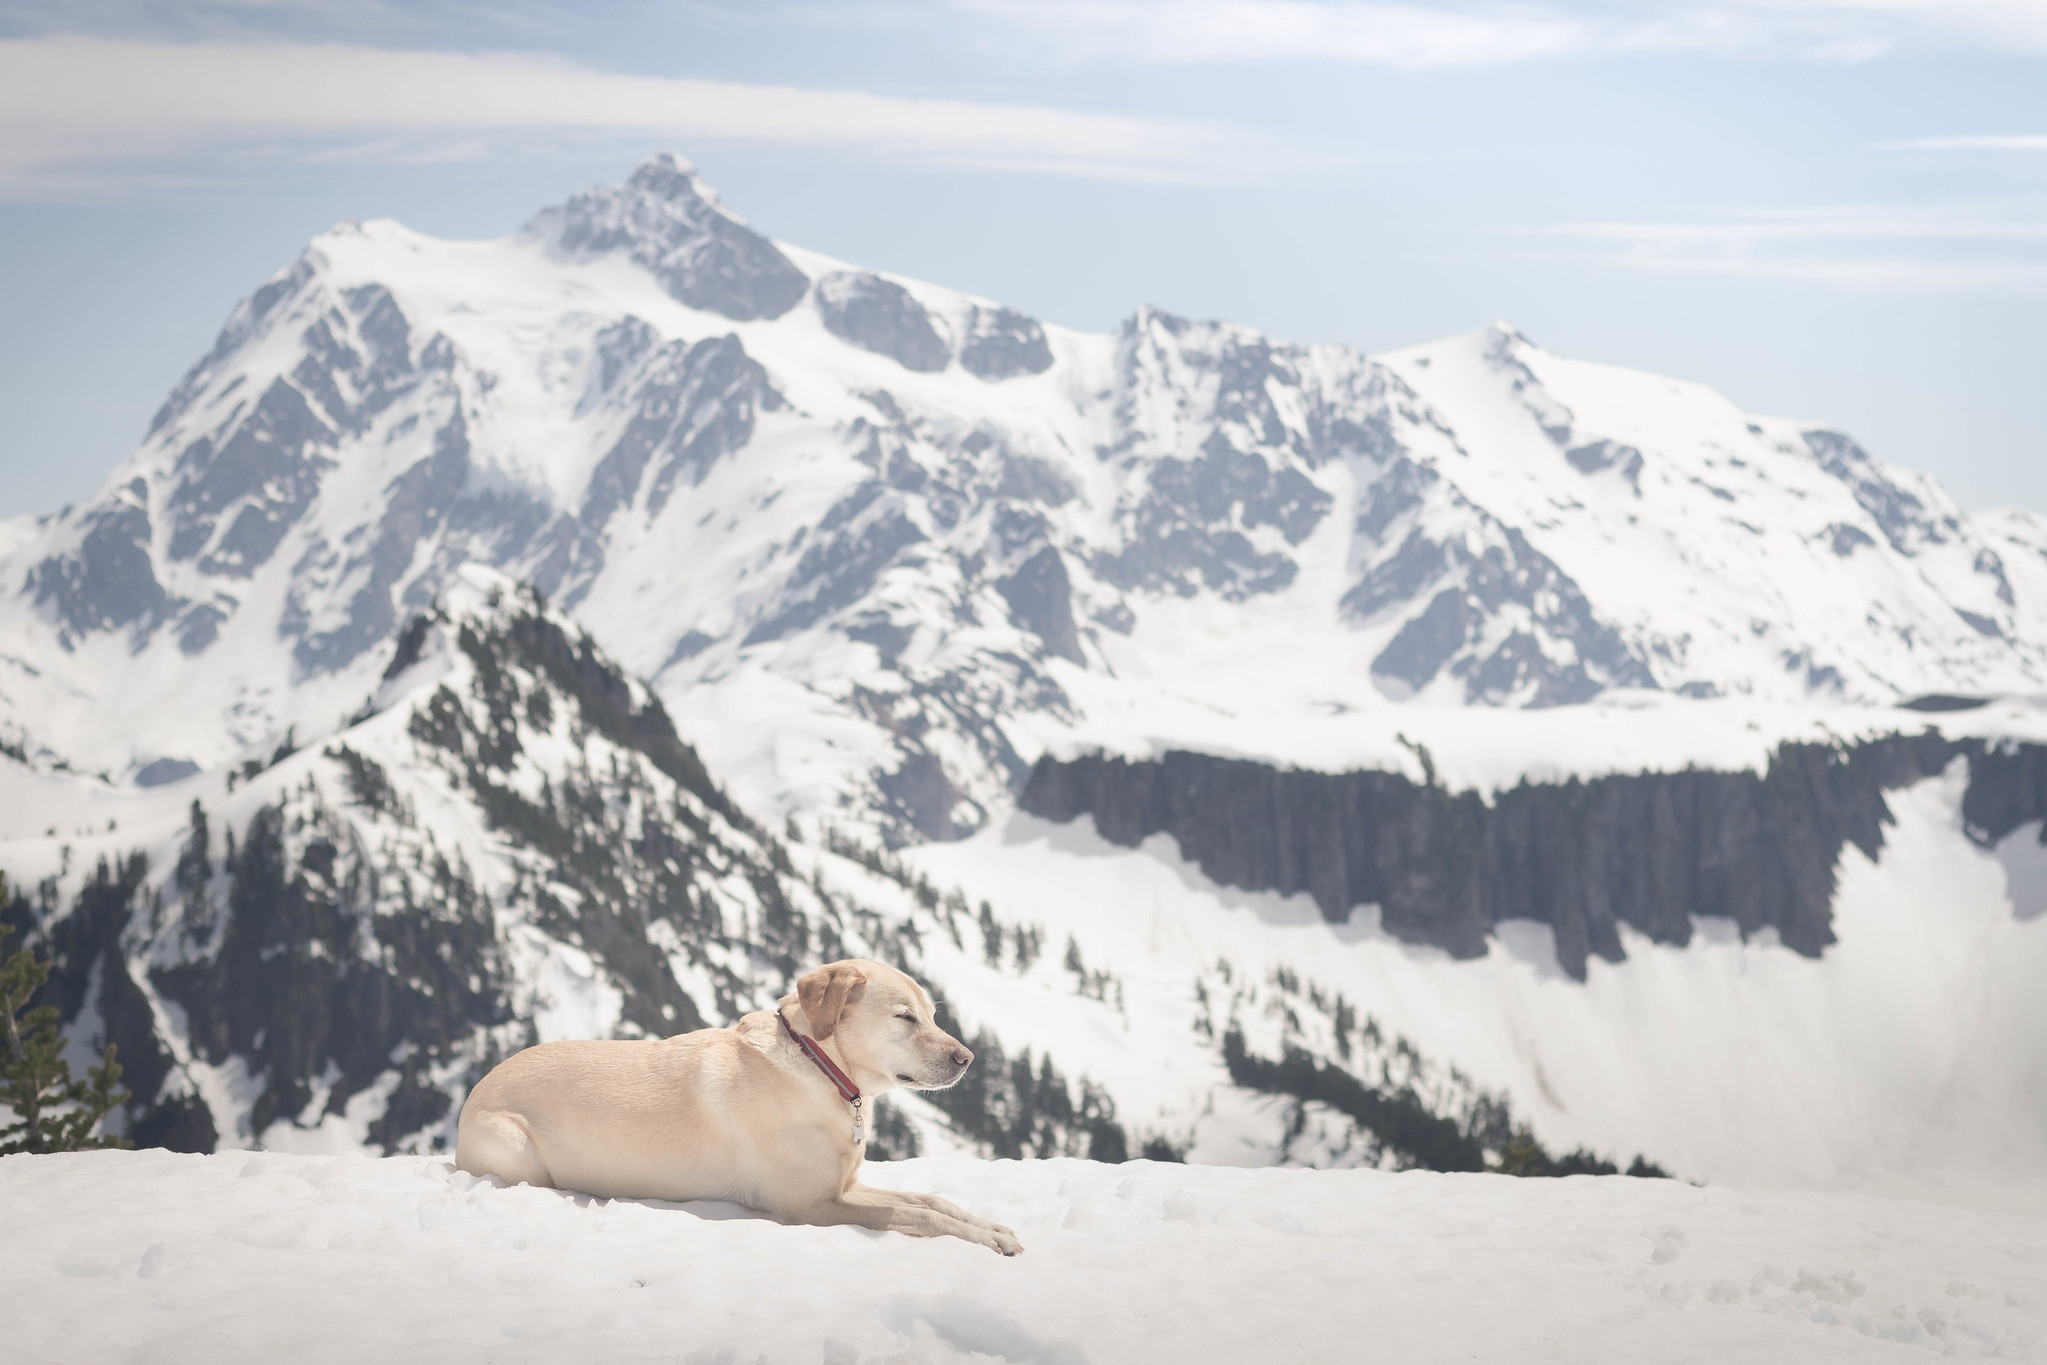 Summit dogs on Barometer Mountain